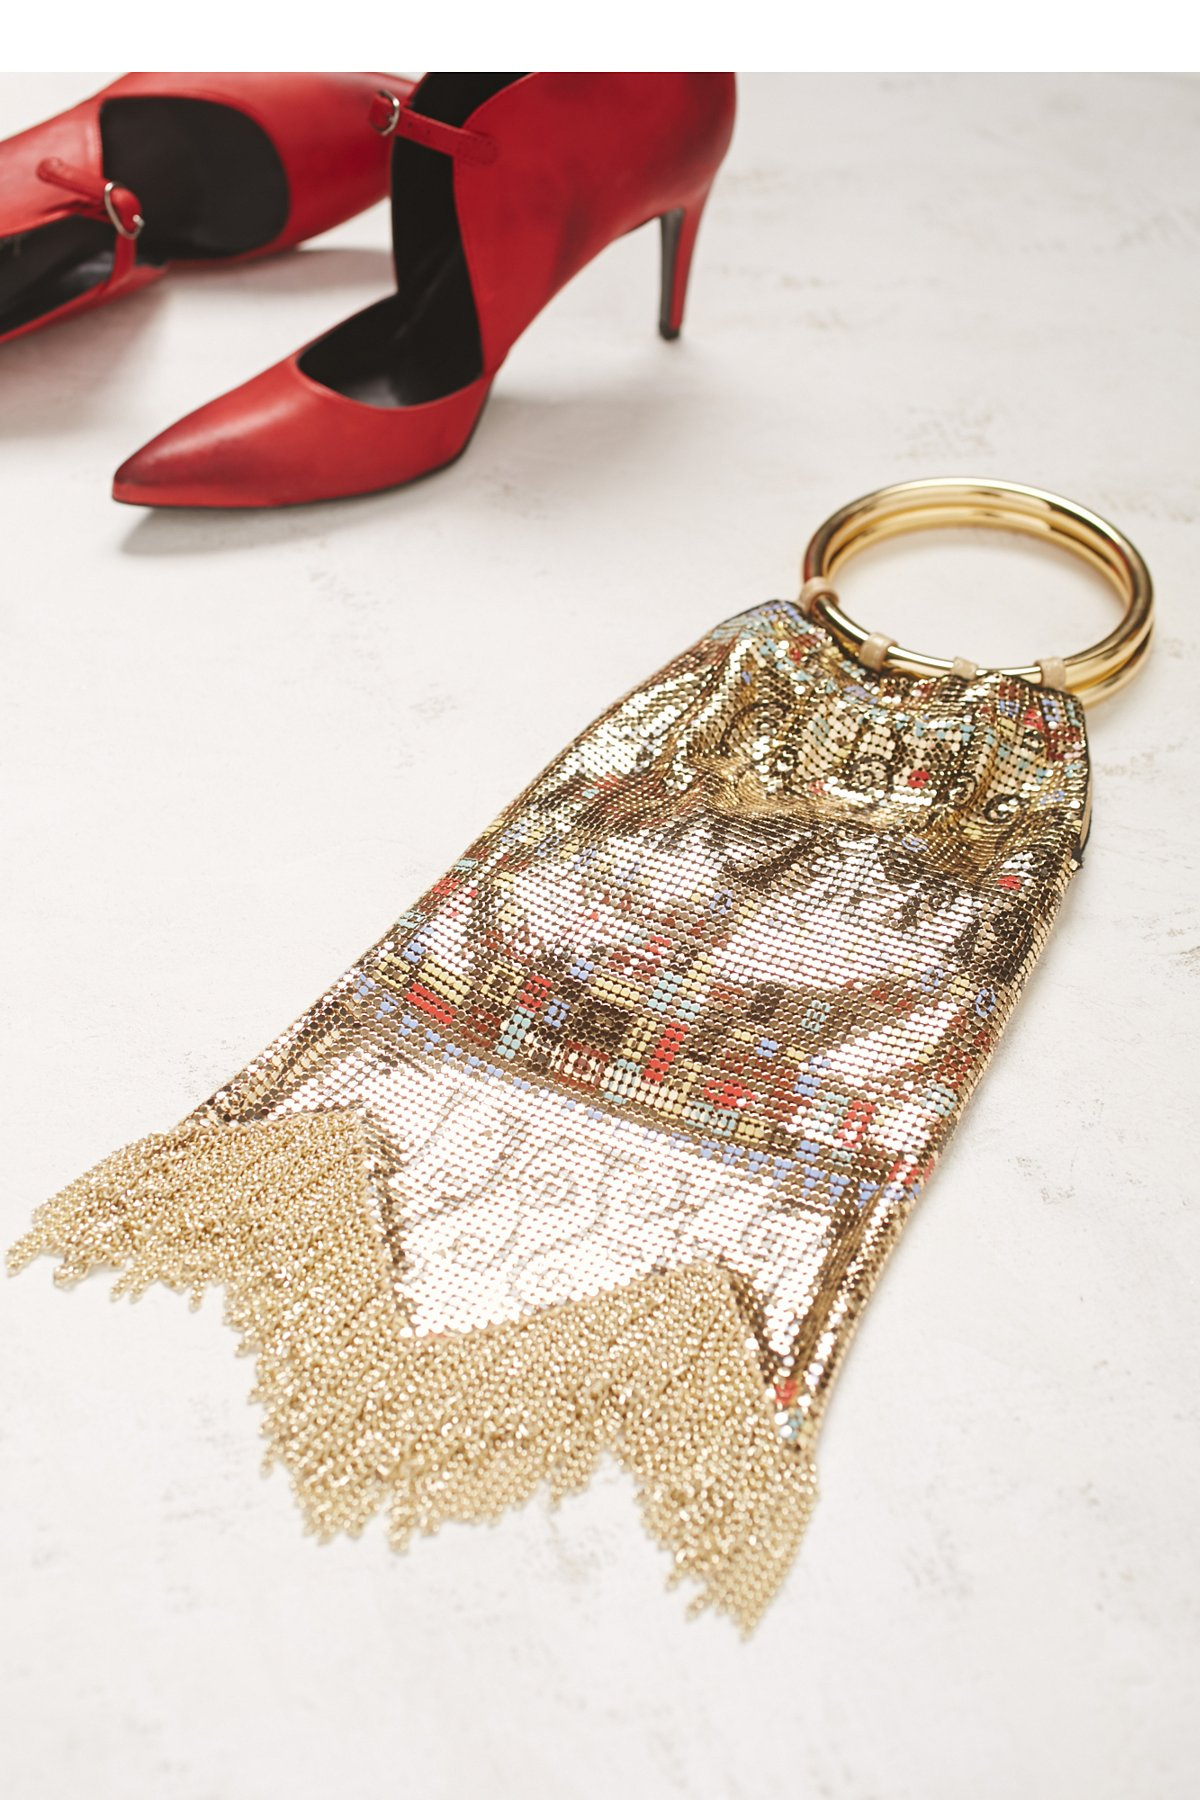 Vienna Double Ring Clutch